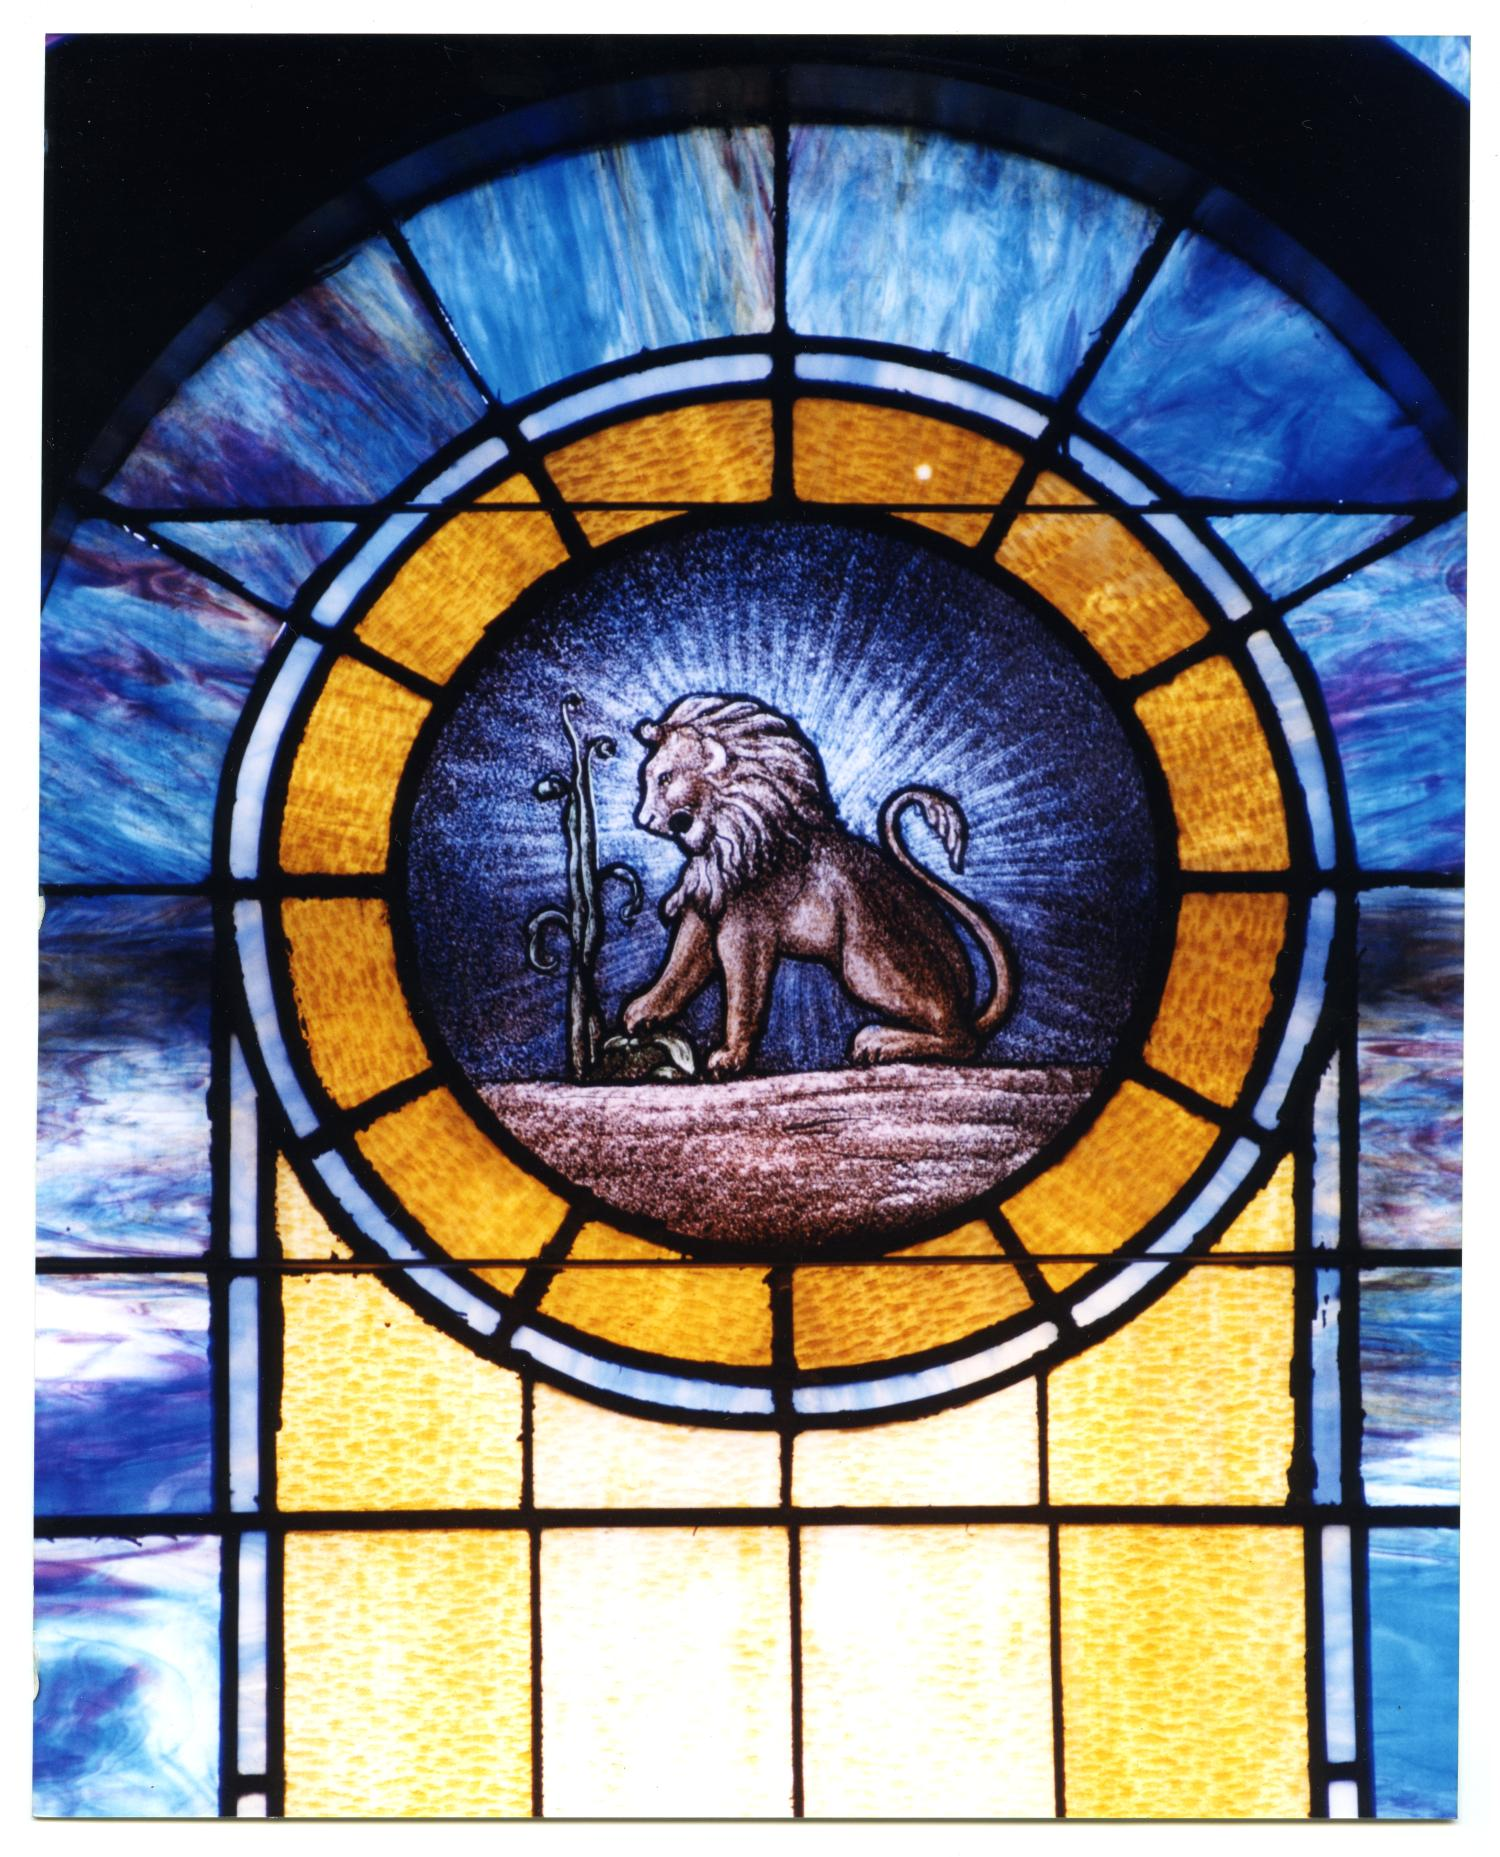 Stained Glass Window Pane Of A Lion The Portal To